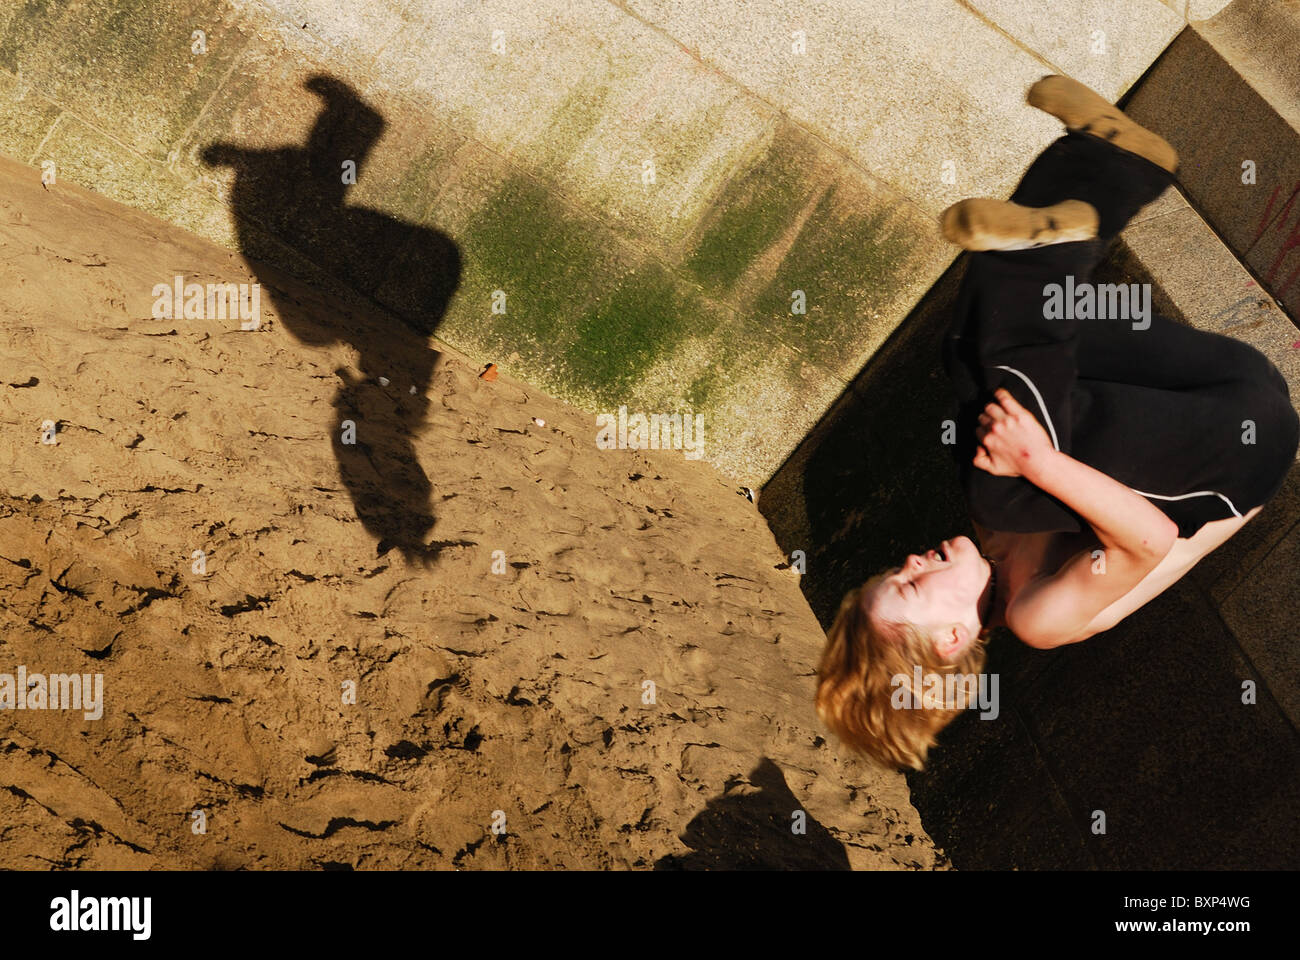 Traceur practicing the art of Parkour doing flips on the banks of the River Thames in London. - Stock Image